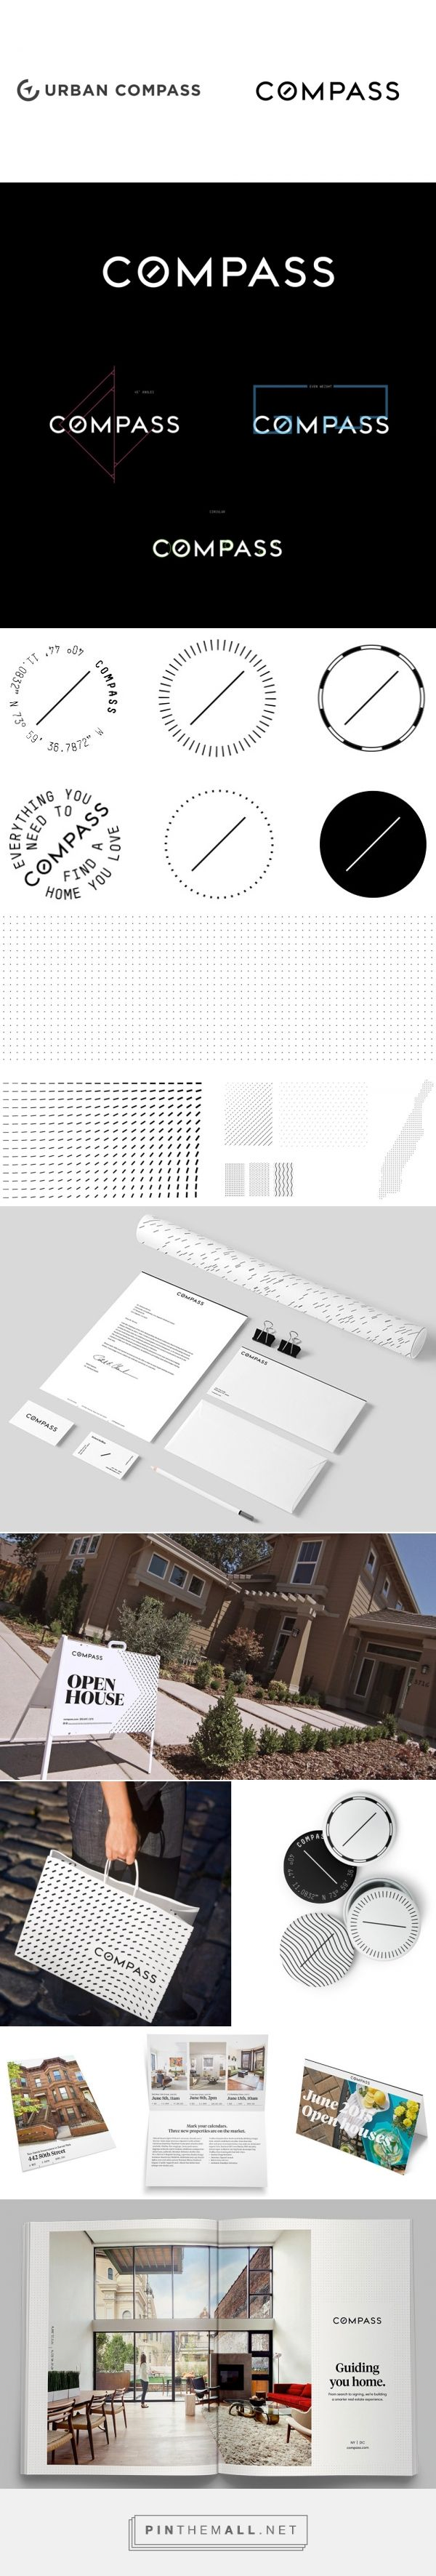 Brand New: New Name, Logo, and Identity for Compass done In-house - created via http://pinthemall.net